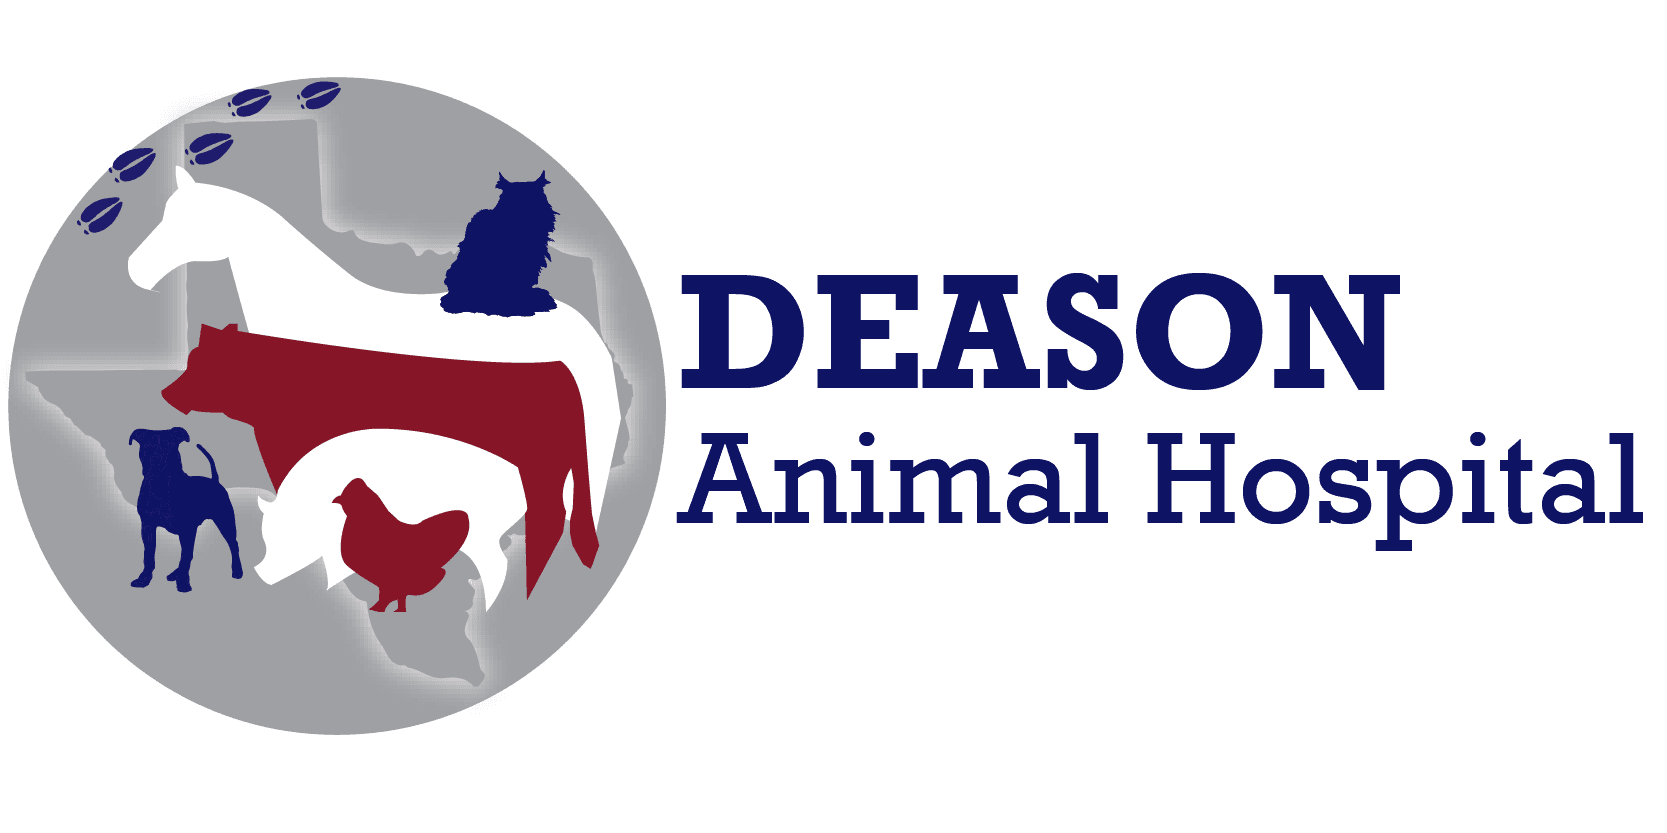 Dog veterinarian serving Floresville Texas, Stockdale, Pleasanton and Wilson County Texas